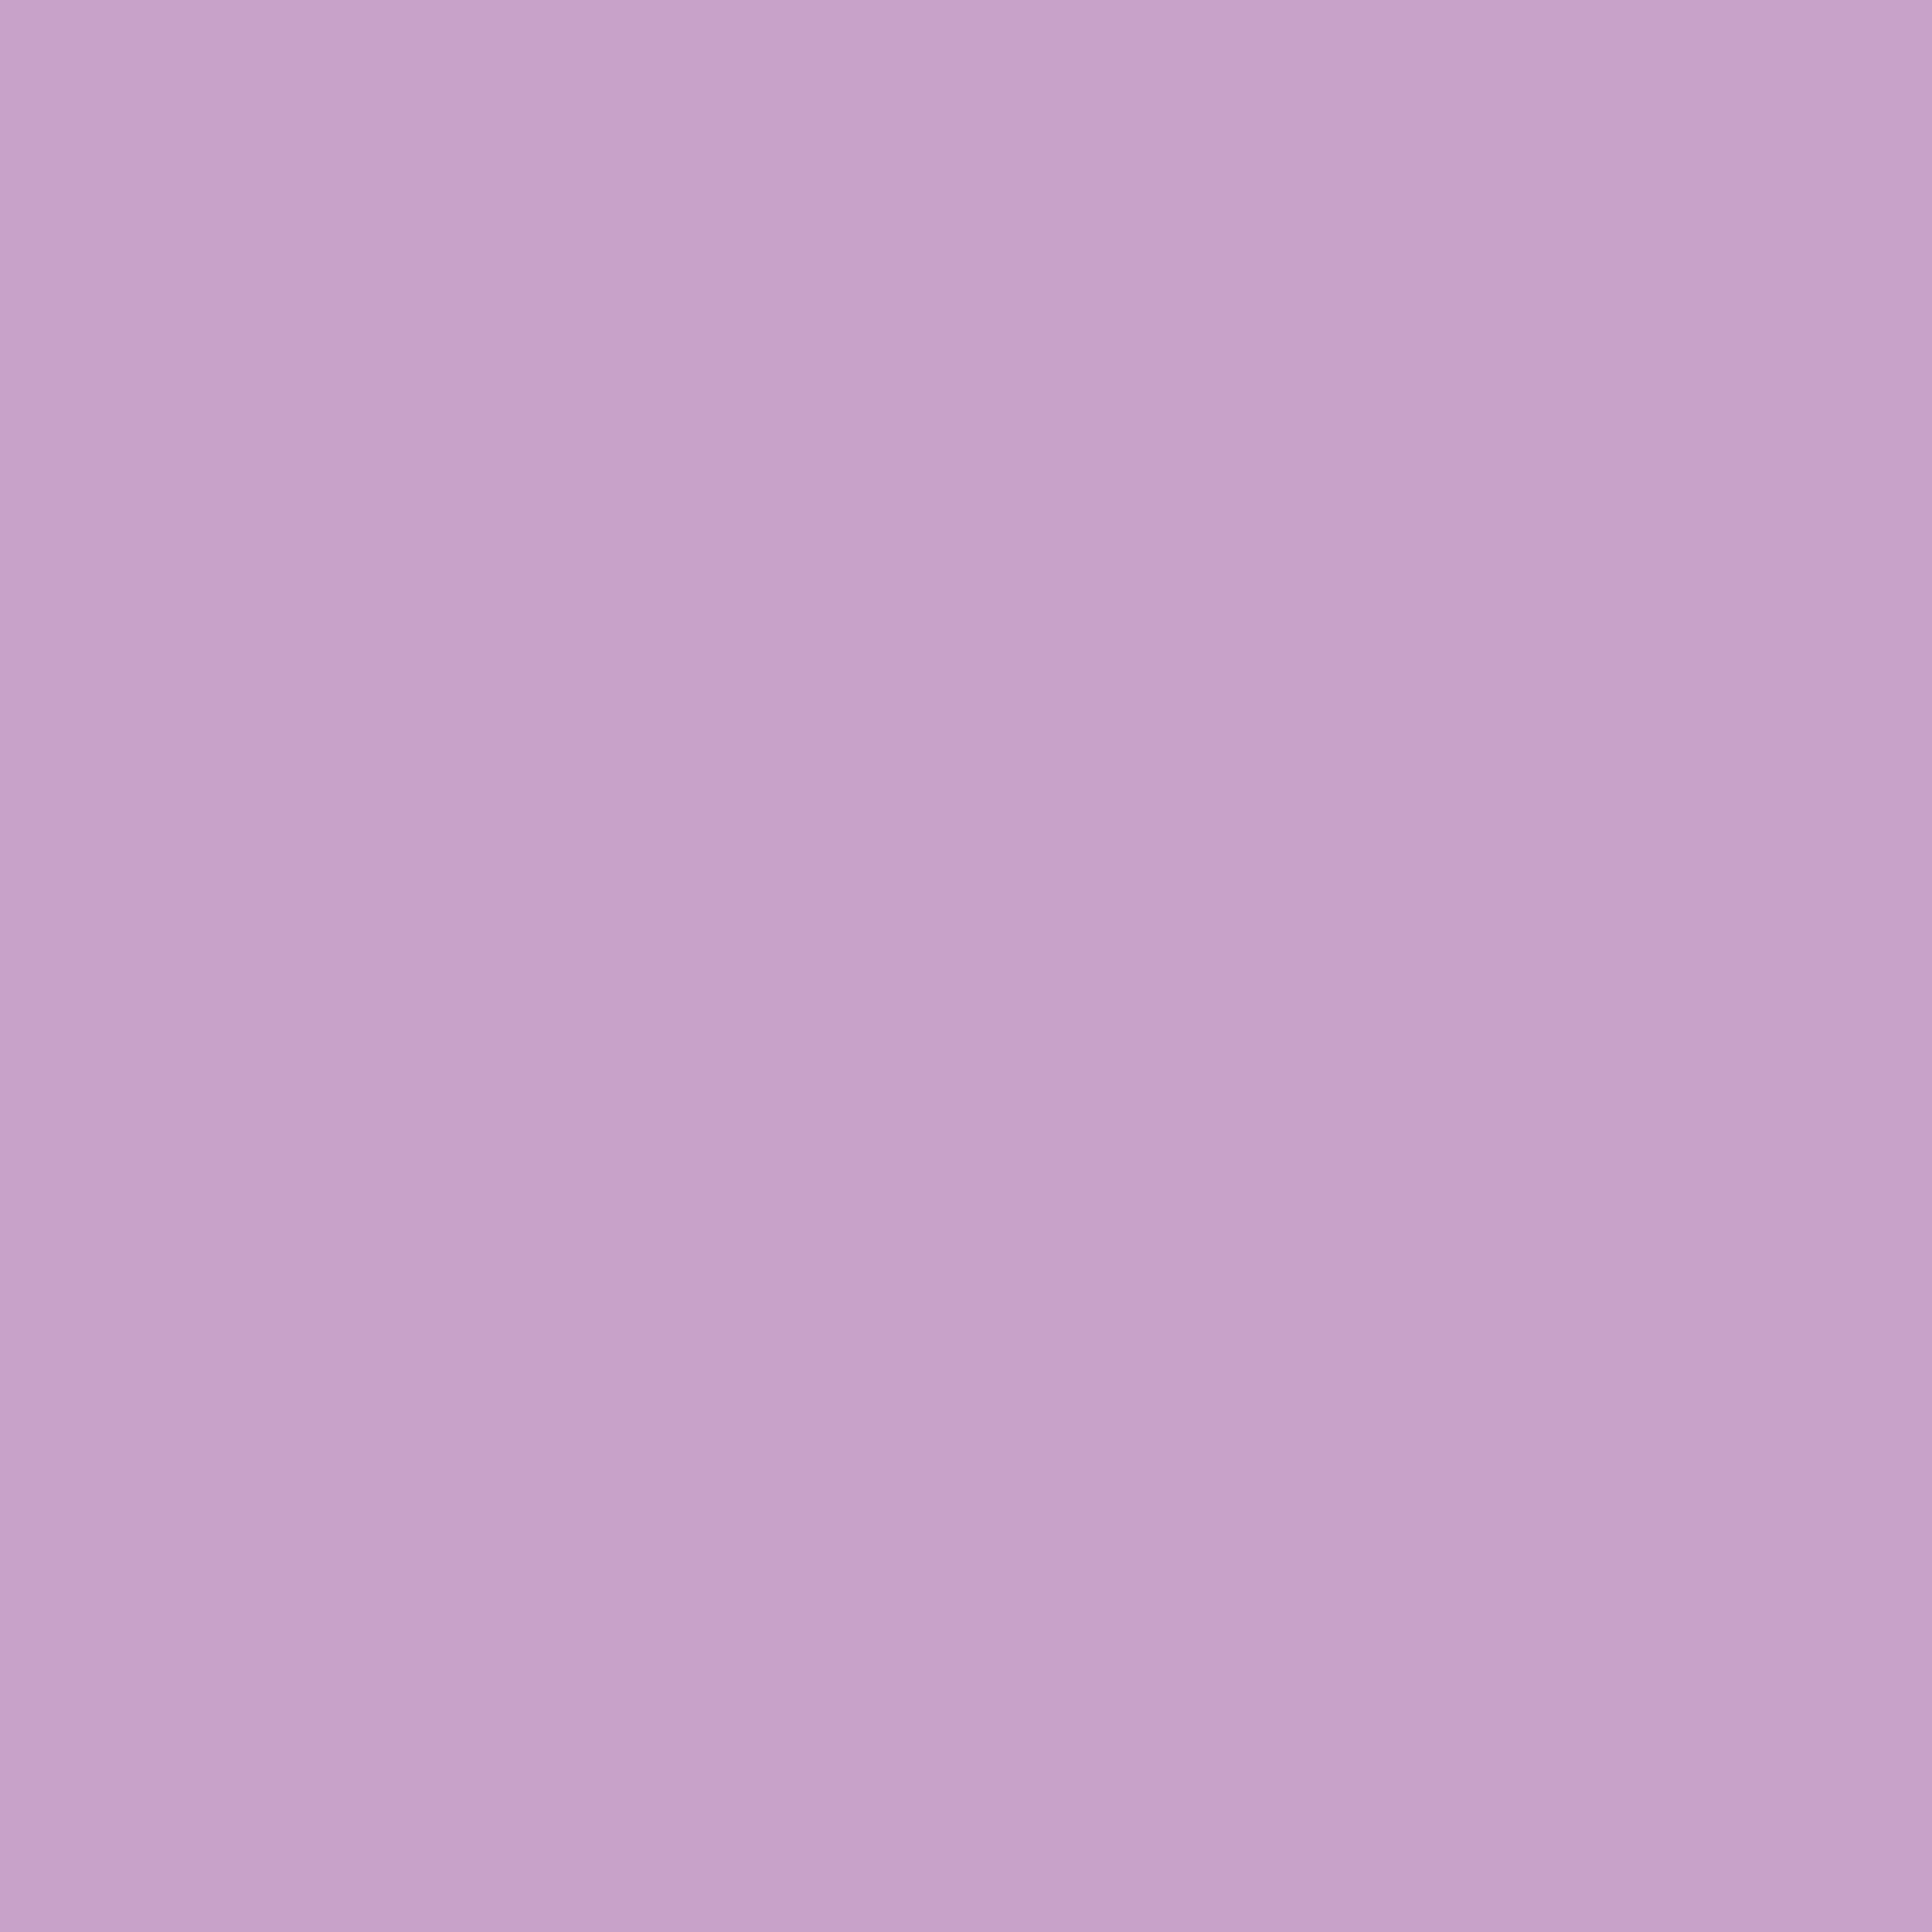 3600x3600 Lilac Solid Color Background